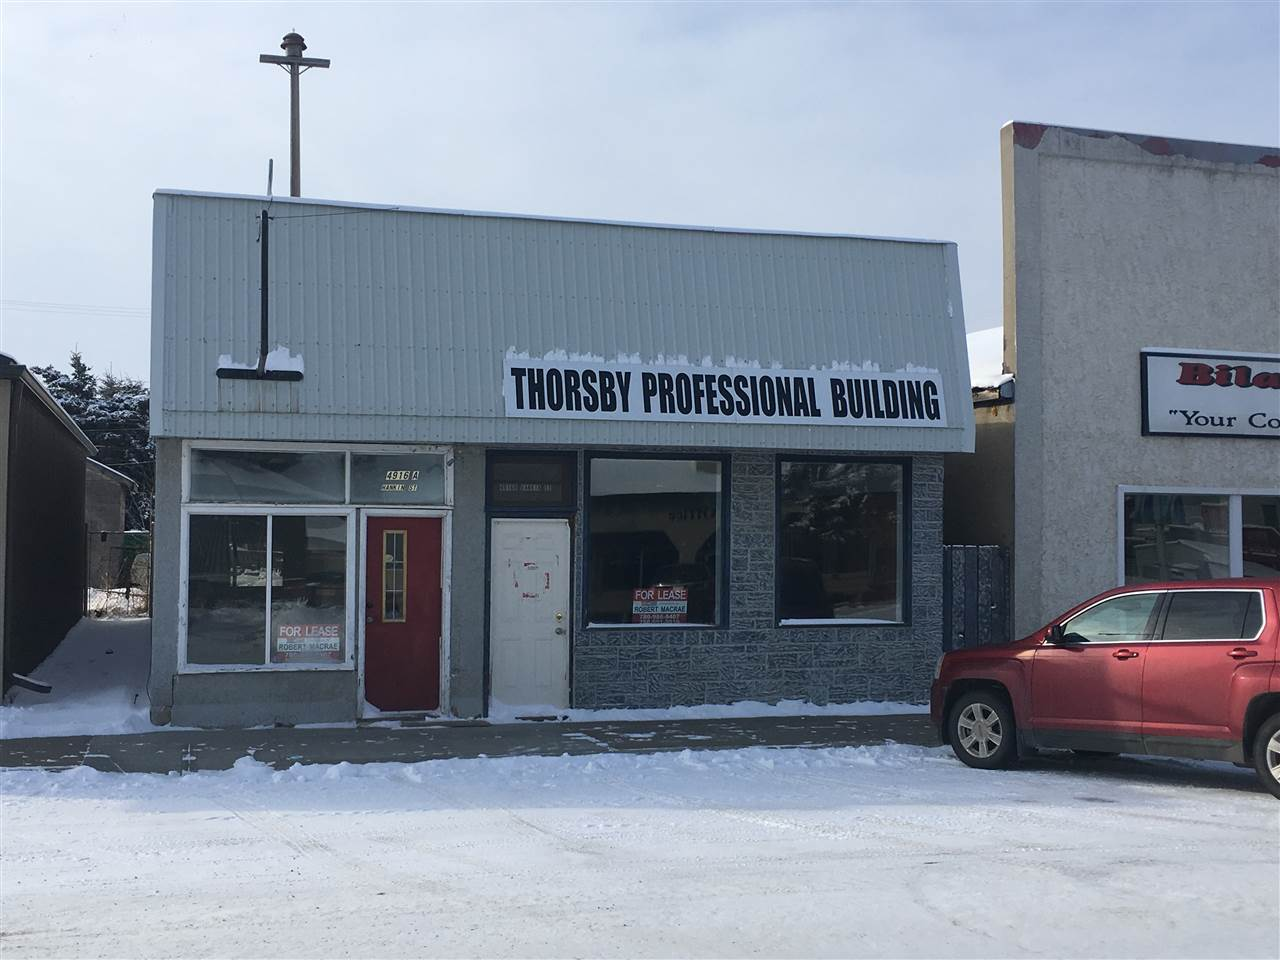 "A solid 2010 SQ FT cement block building situated on the main business strip in Thorsby. Affordable business location - 24 minutes from Leduc.  The building is divided into 2 separate areas with 2 address's, individual front entry's, separate furnace and gas meters, common water and bathroom / coffee room area. Rear lane access and parking. Ideal set-up for a vape AND Cannabis retail dispensary.  South side is approx 1400 SQ. FT. with storage and rear building access. North side approx. 490 SQ. FT. Both sides have frontage traffic exposure. Quick possession, Vendor will consider "" lease to own"". Either or both sides can be leased as well @ $1.00 psf/ month plus utilities."